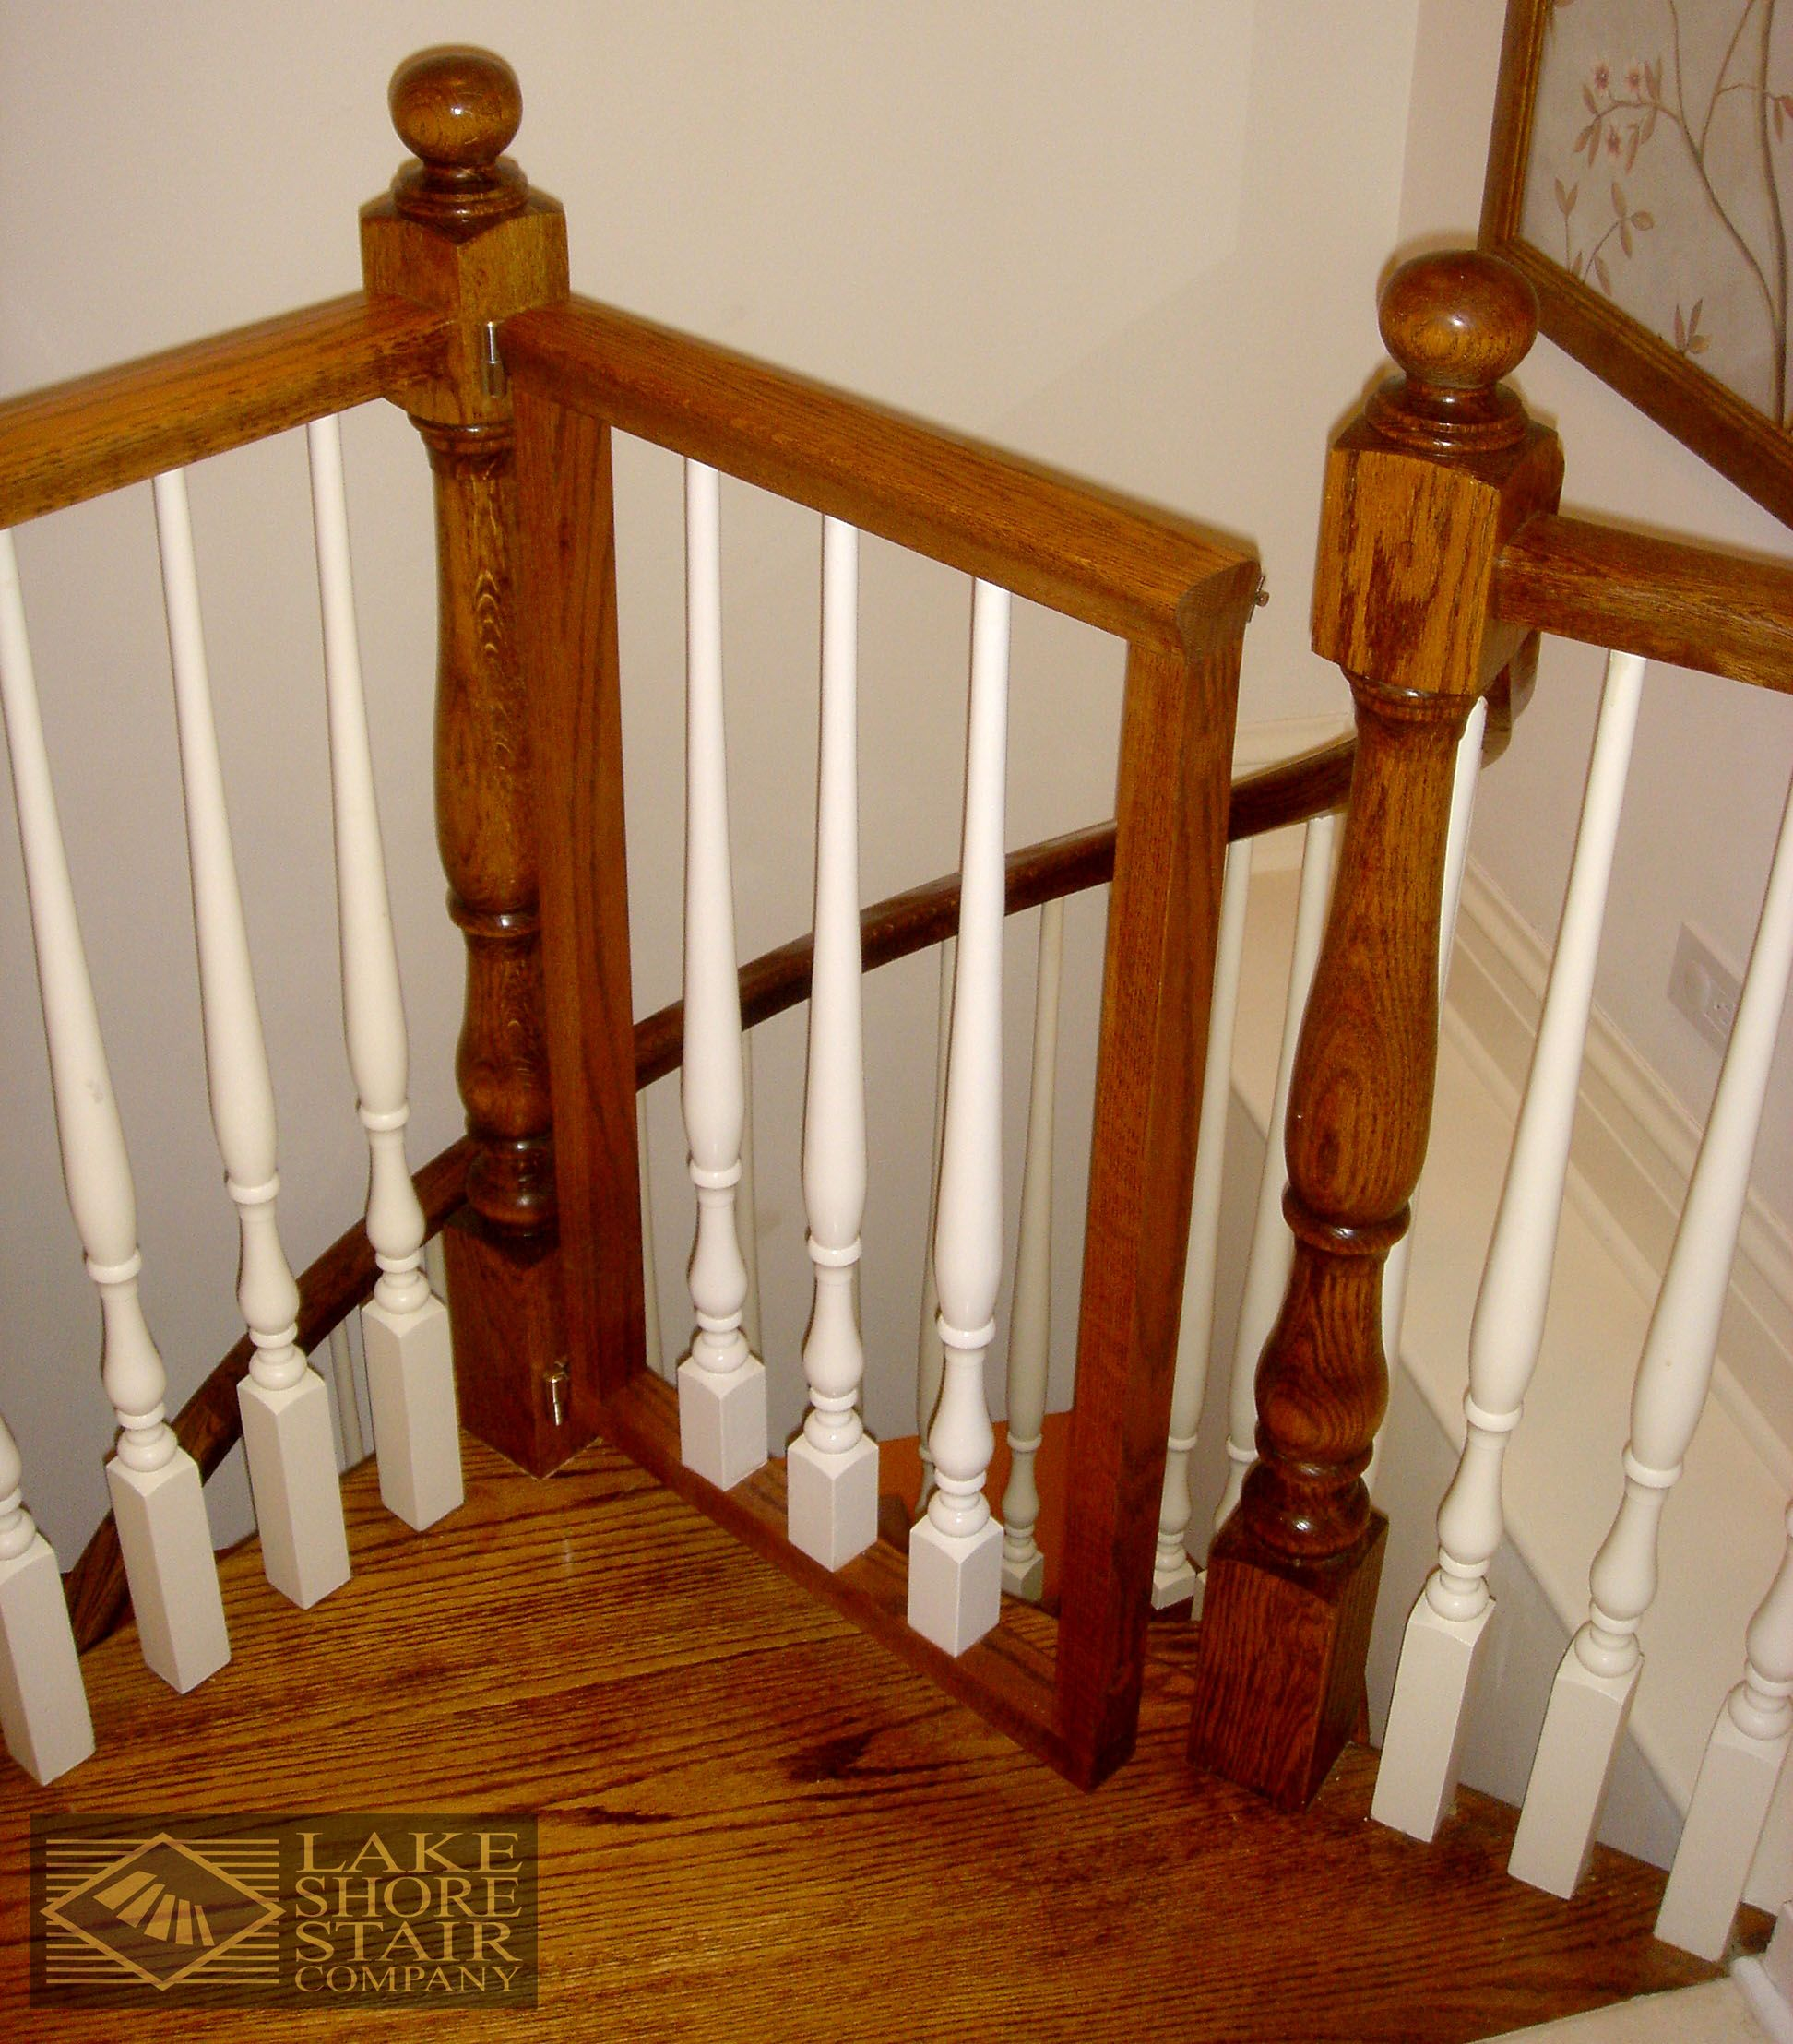 Custom Designed Baby Gate For The Top Of A Spiral Stair